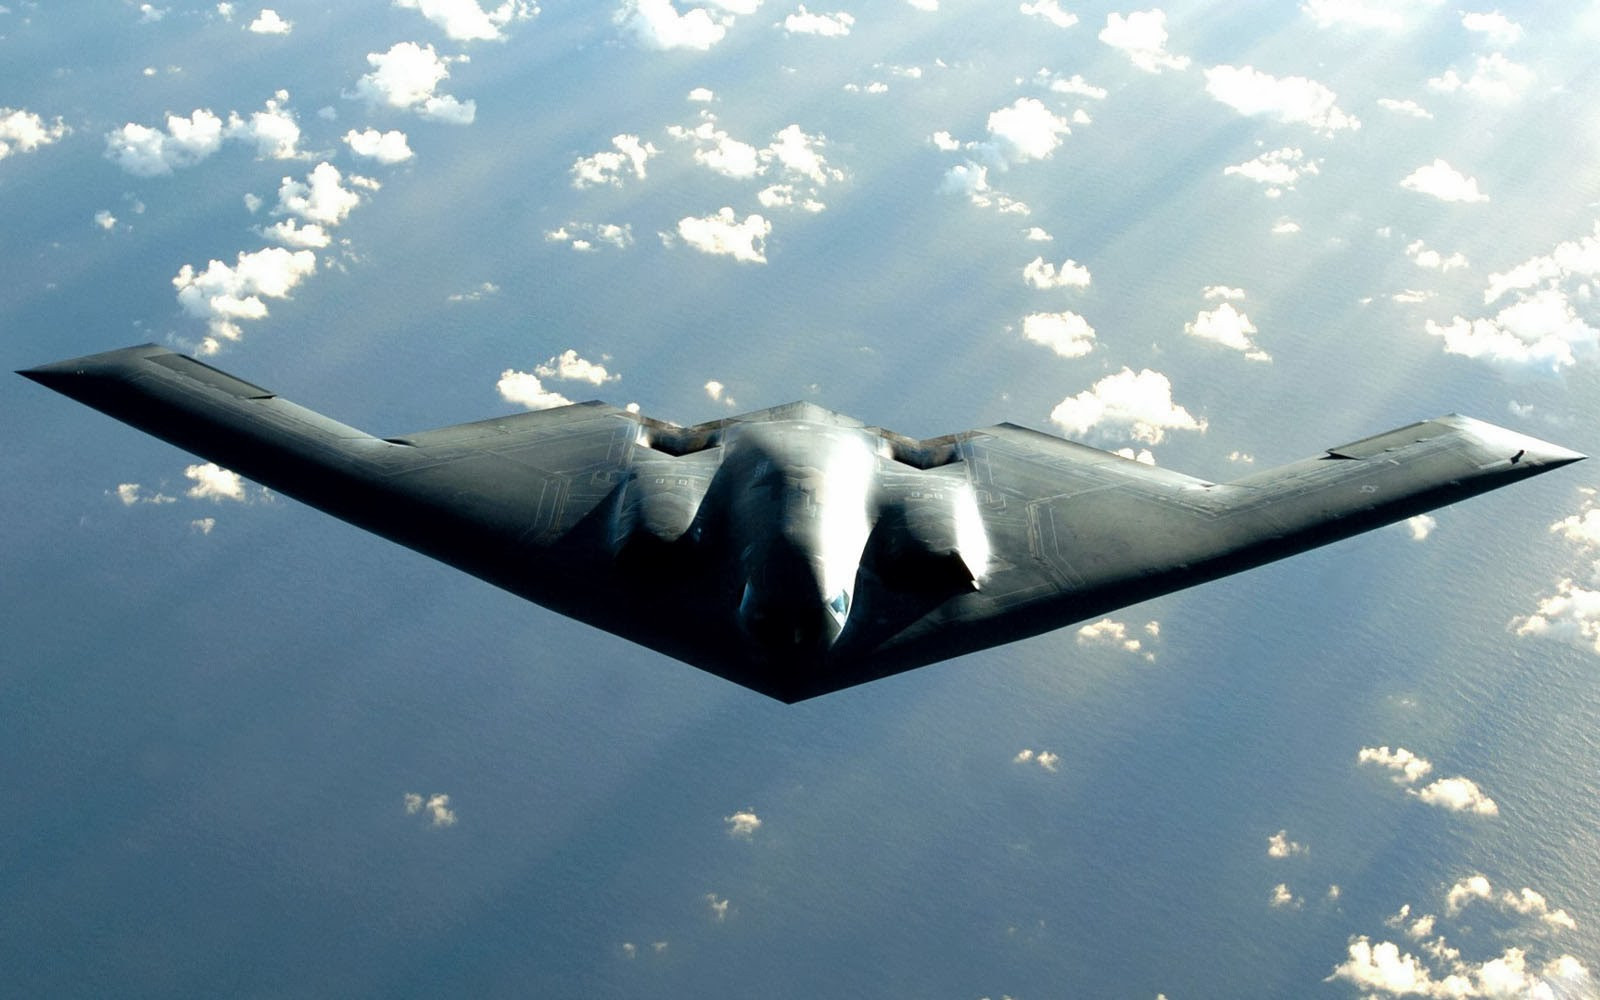 northrop-grumman-b-2-spirit-aircraft-wallpapers-3